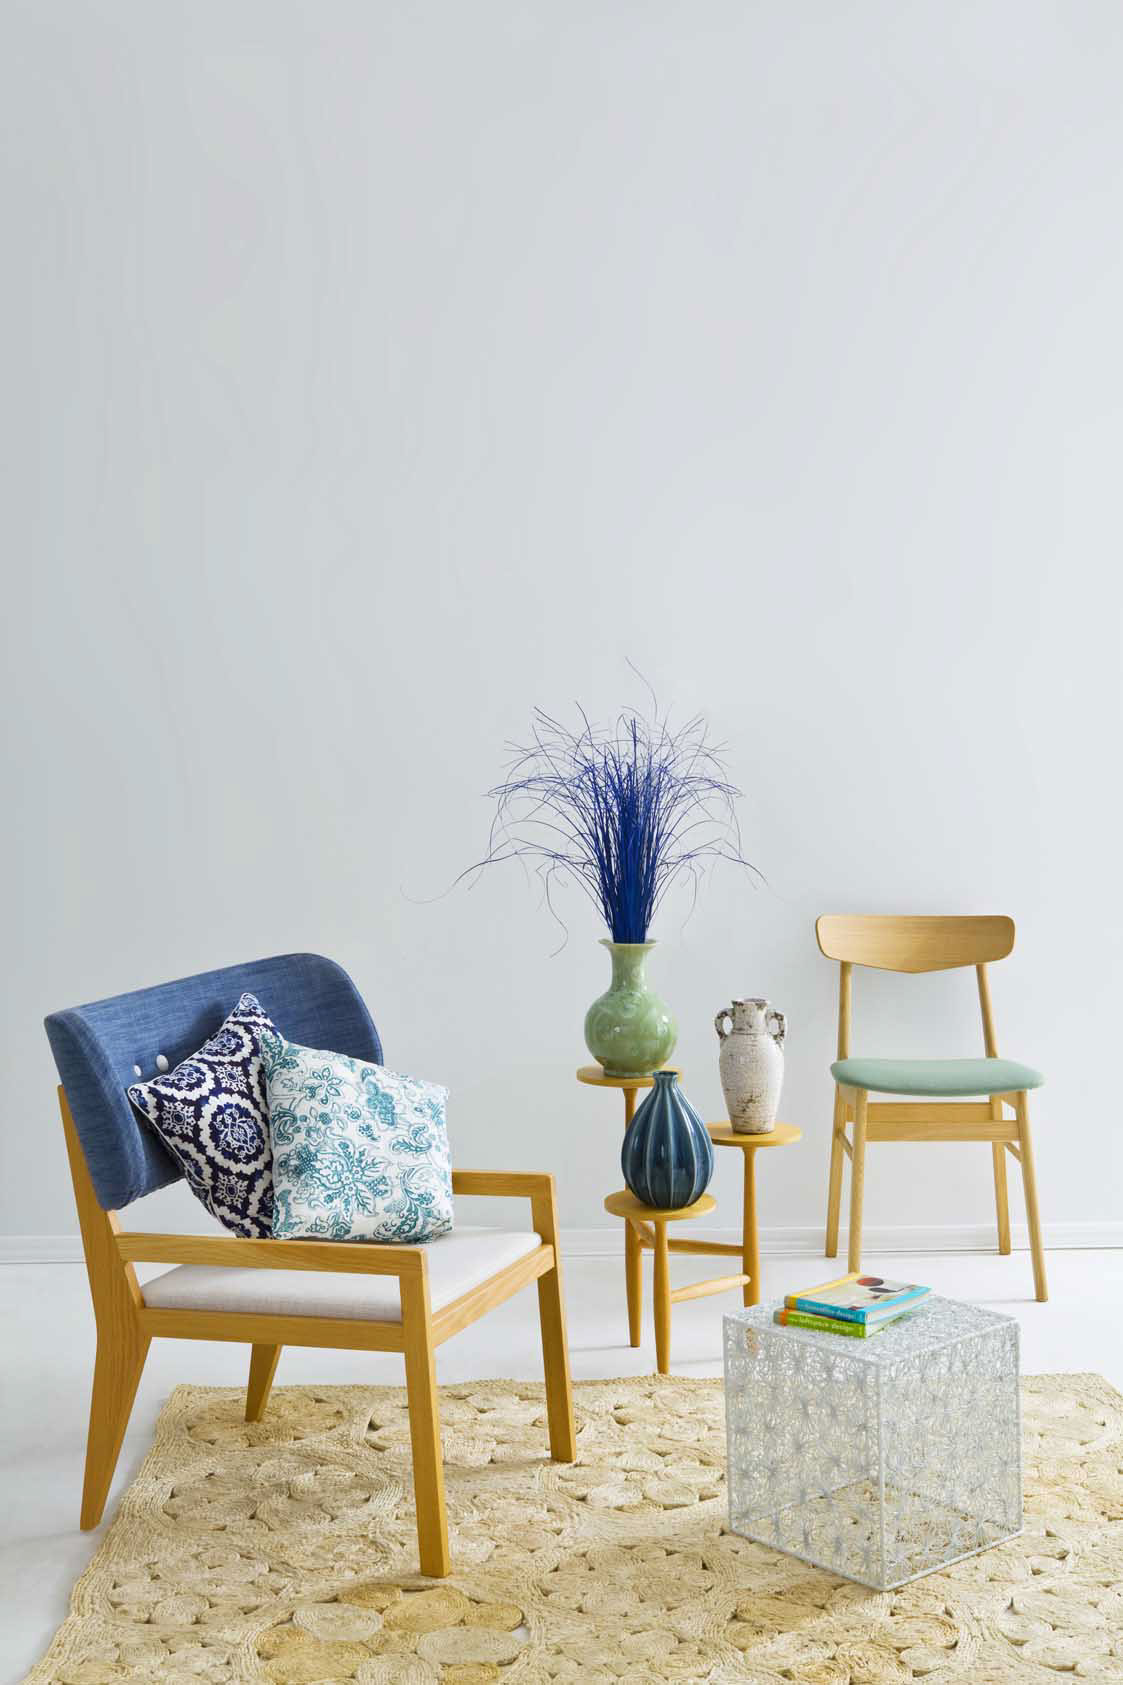 magazine Interior furniture light retouch colors still life product chair flower Coach table candel room house